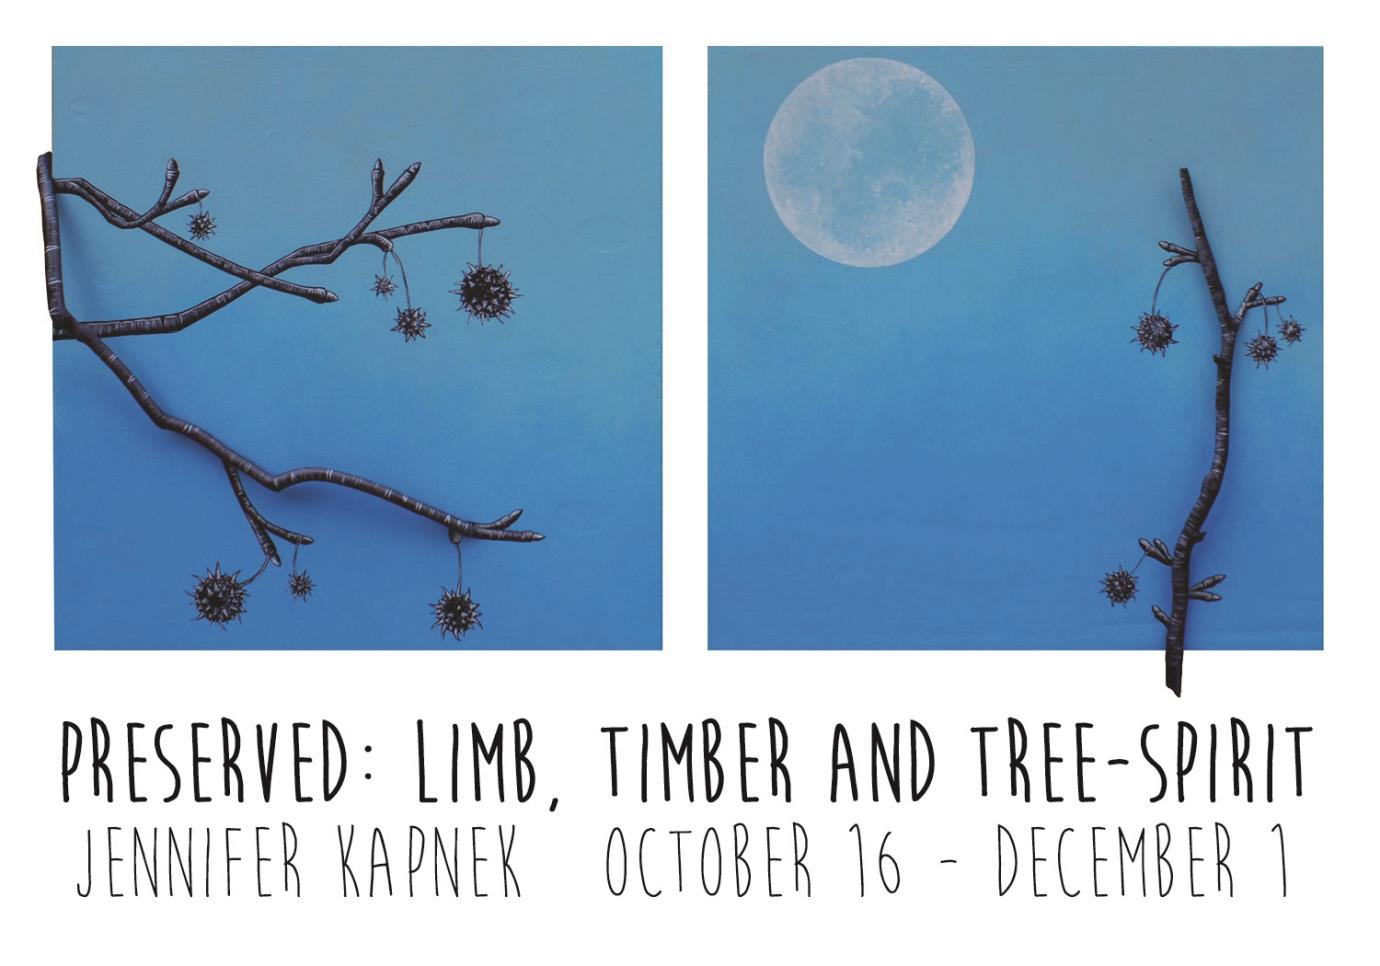 Two blue paintings with trees and a moon; Preserved: Limb, Timber, and tree-spirit, Jennifer Kapnek; October 16 - December 1